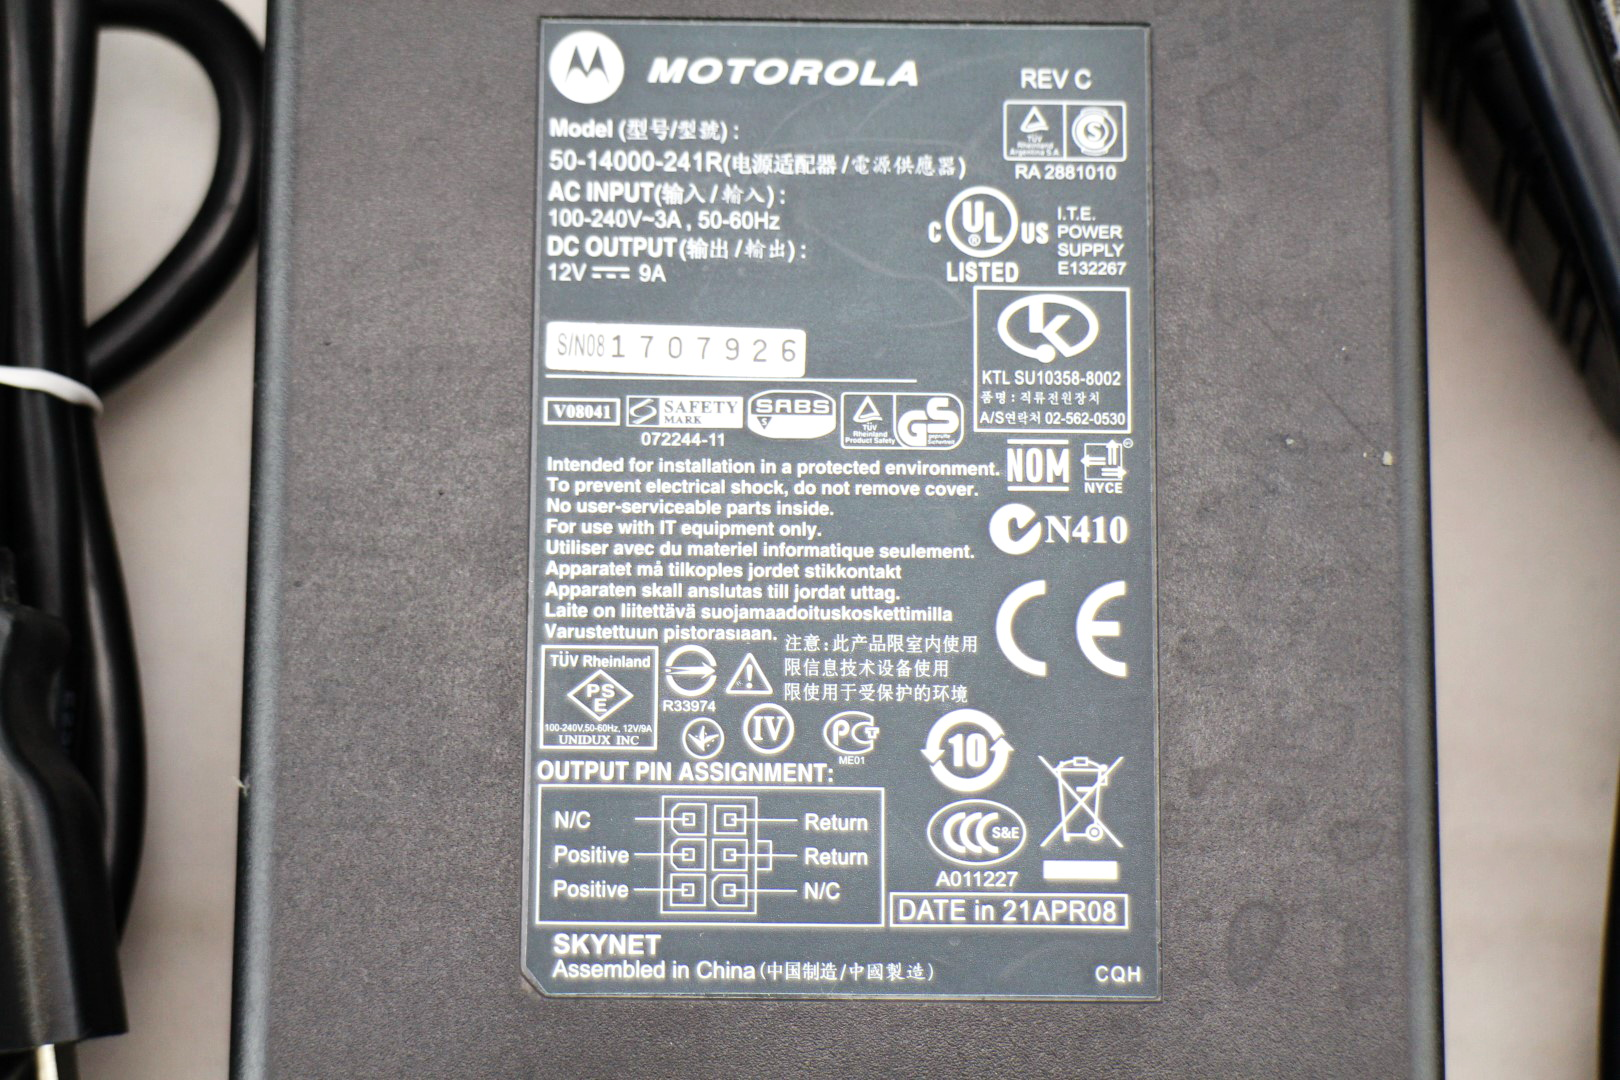 Motorola Symbol Pwrs 14000 241r 50 Ac Power Supply Pin On Dc Source Schematic 16002 029r Discounted Retail Products Coupons